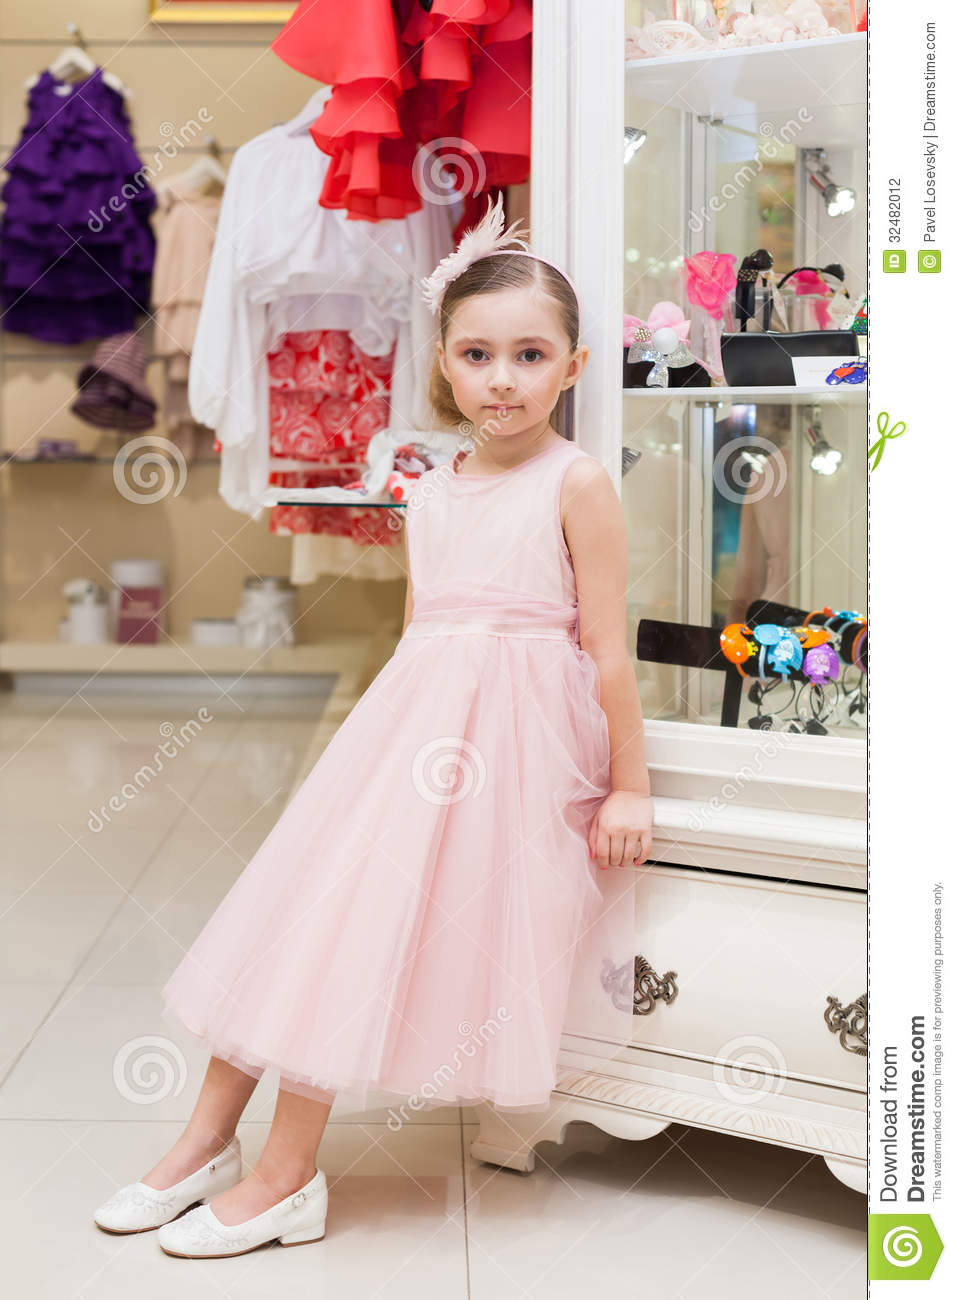 Pink store clothes